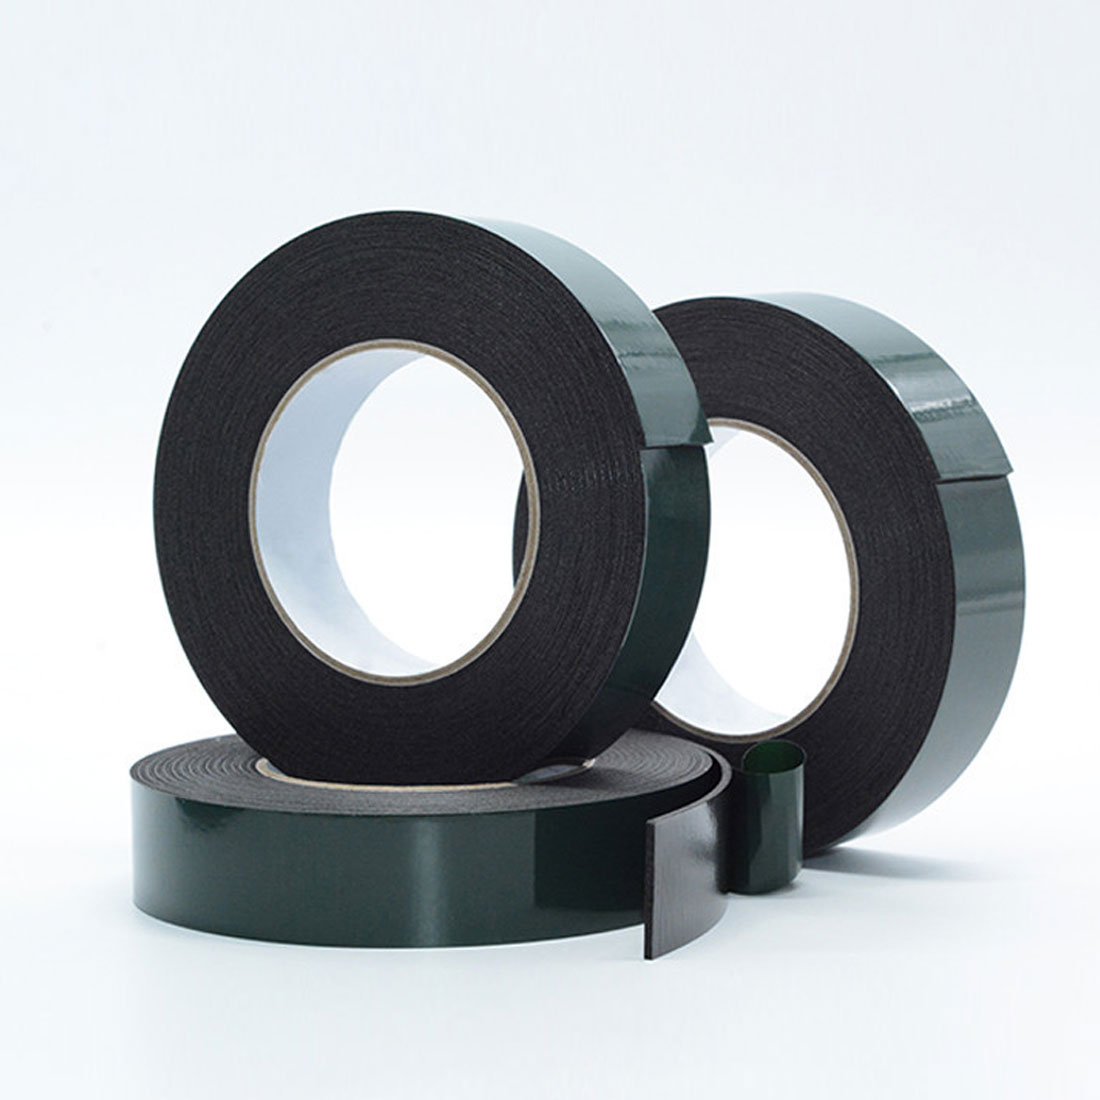 1 Pc 10m Length Strong Adhesive Waterproof Double Sided Tape High Quality 10mm Width Foam Green Tape Trim Home Car